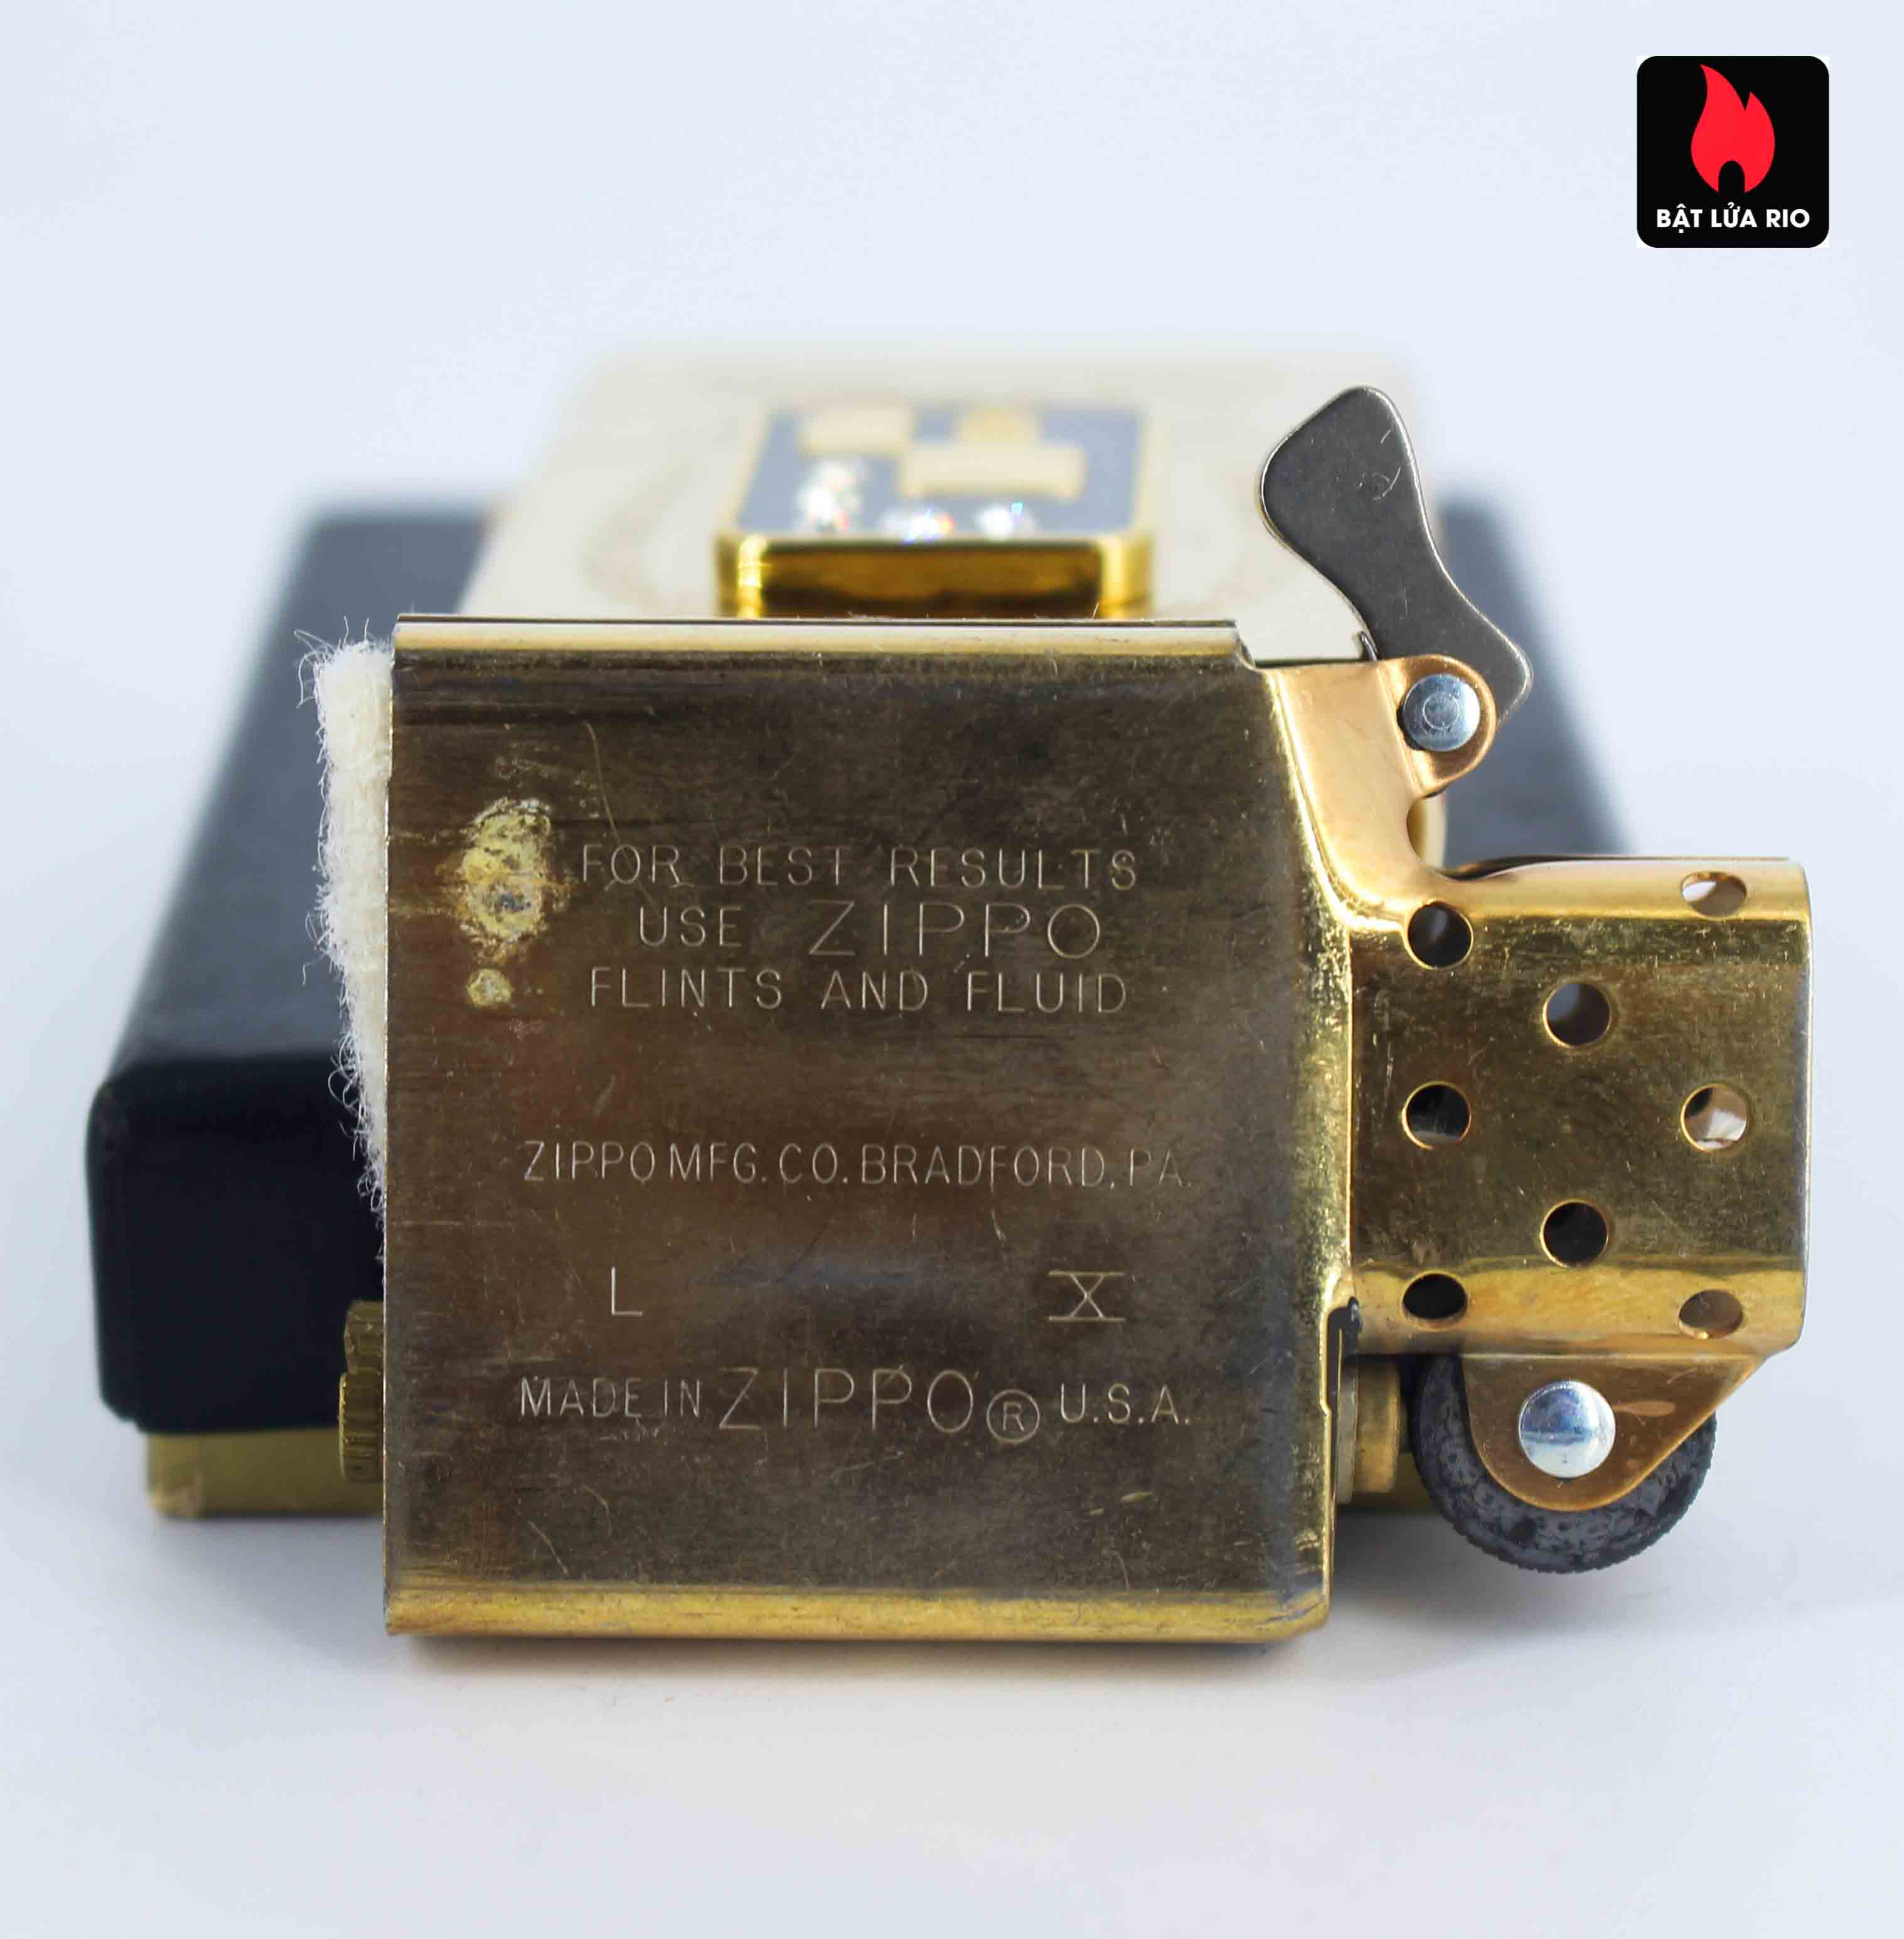 Zippo La Mã 1995 - 50th Anniversary Of The And Of The Battle Of Okinawa WWII 1945-1995 5